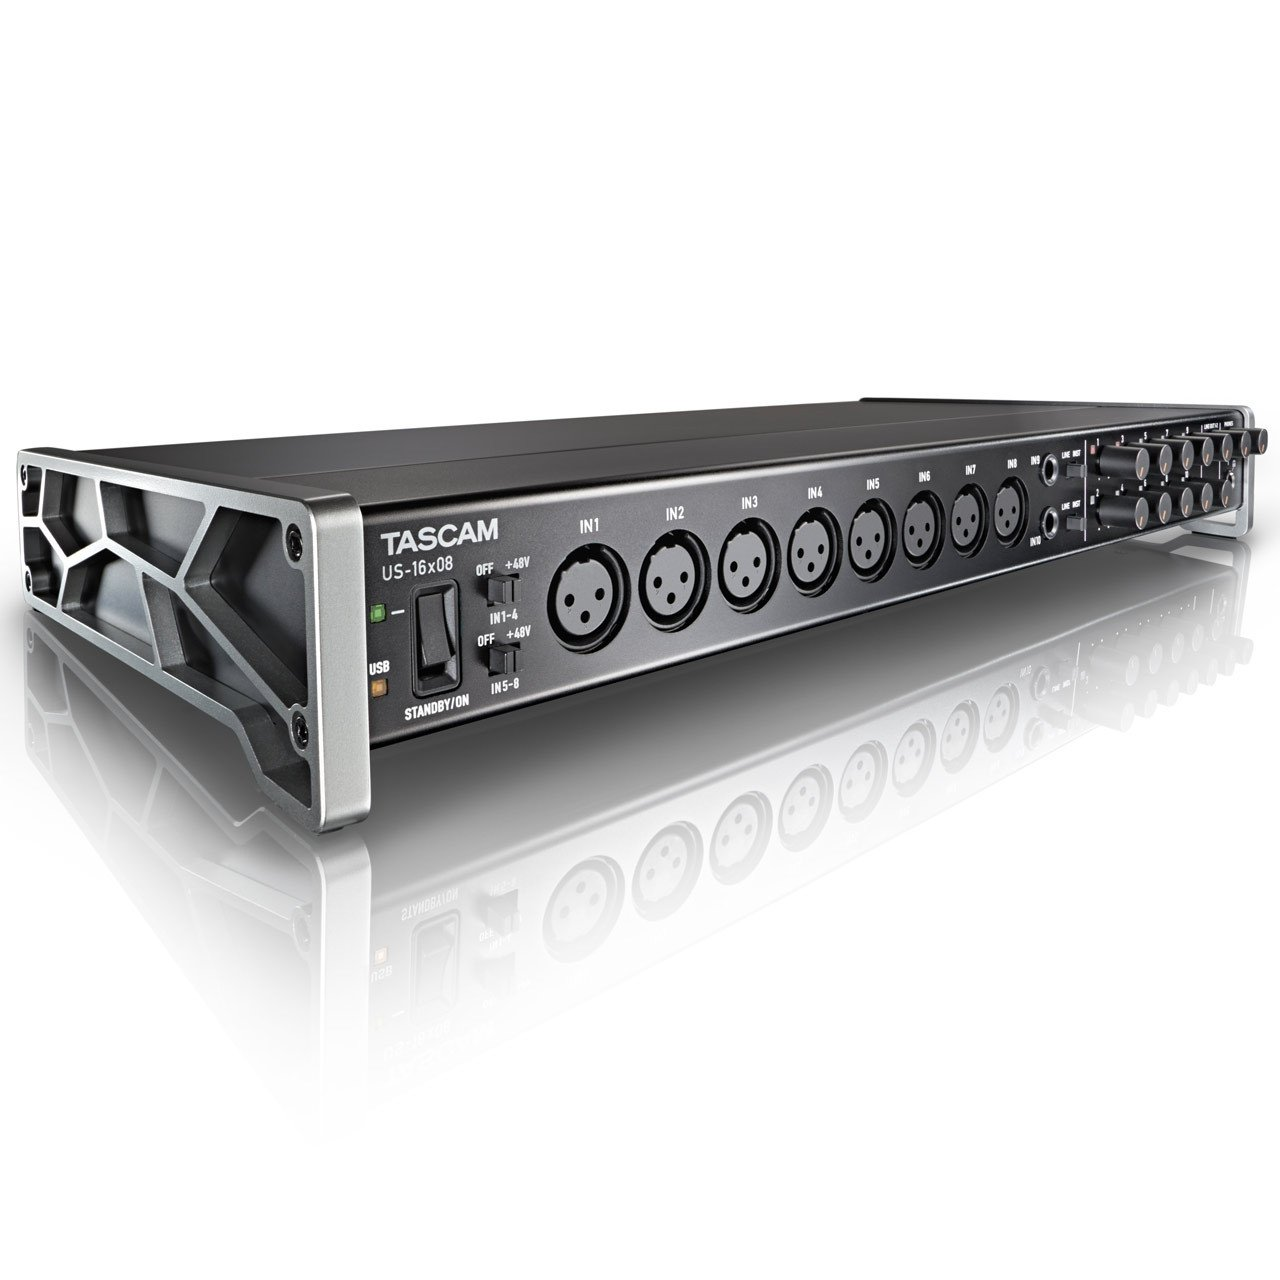 USB Audio Interfaces - TASCAM US-16x08 16-input Audio Interface For Mac, Windows And IPad